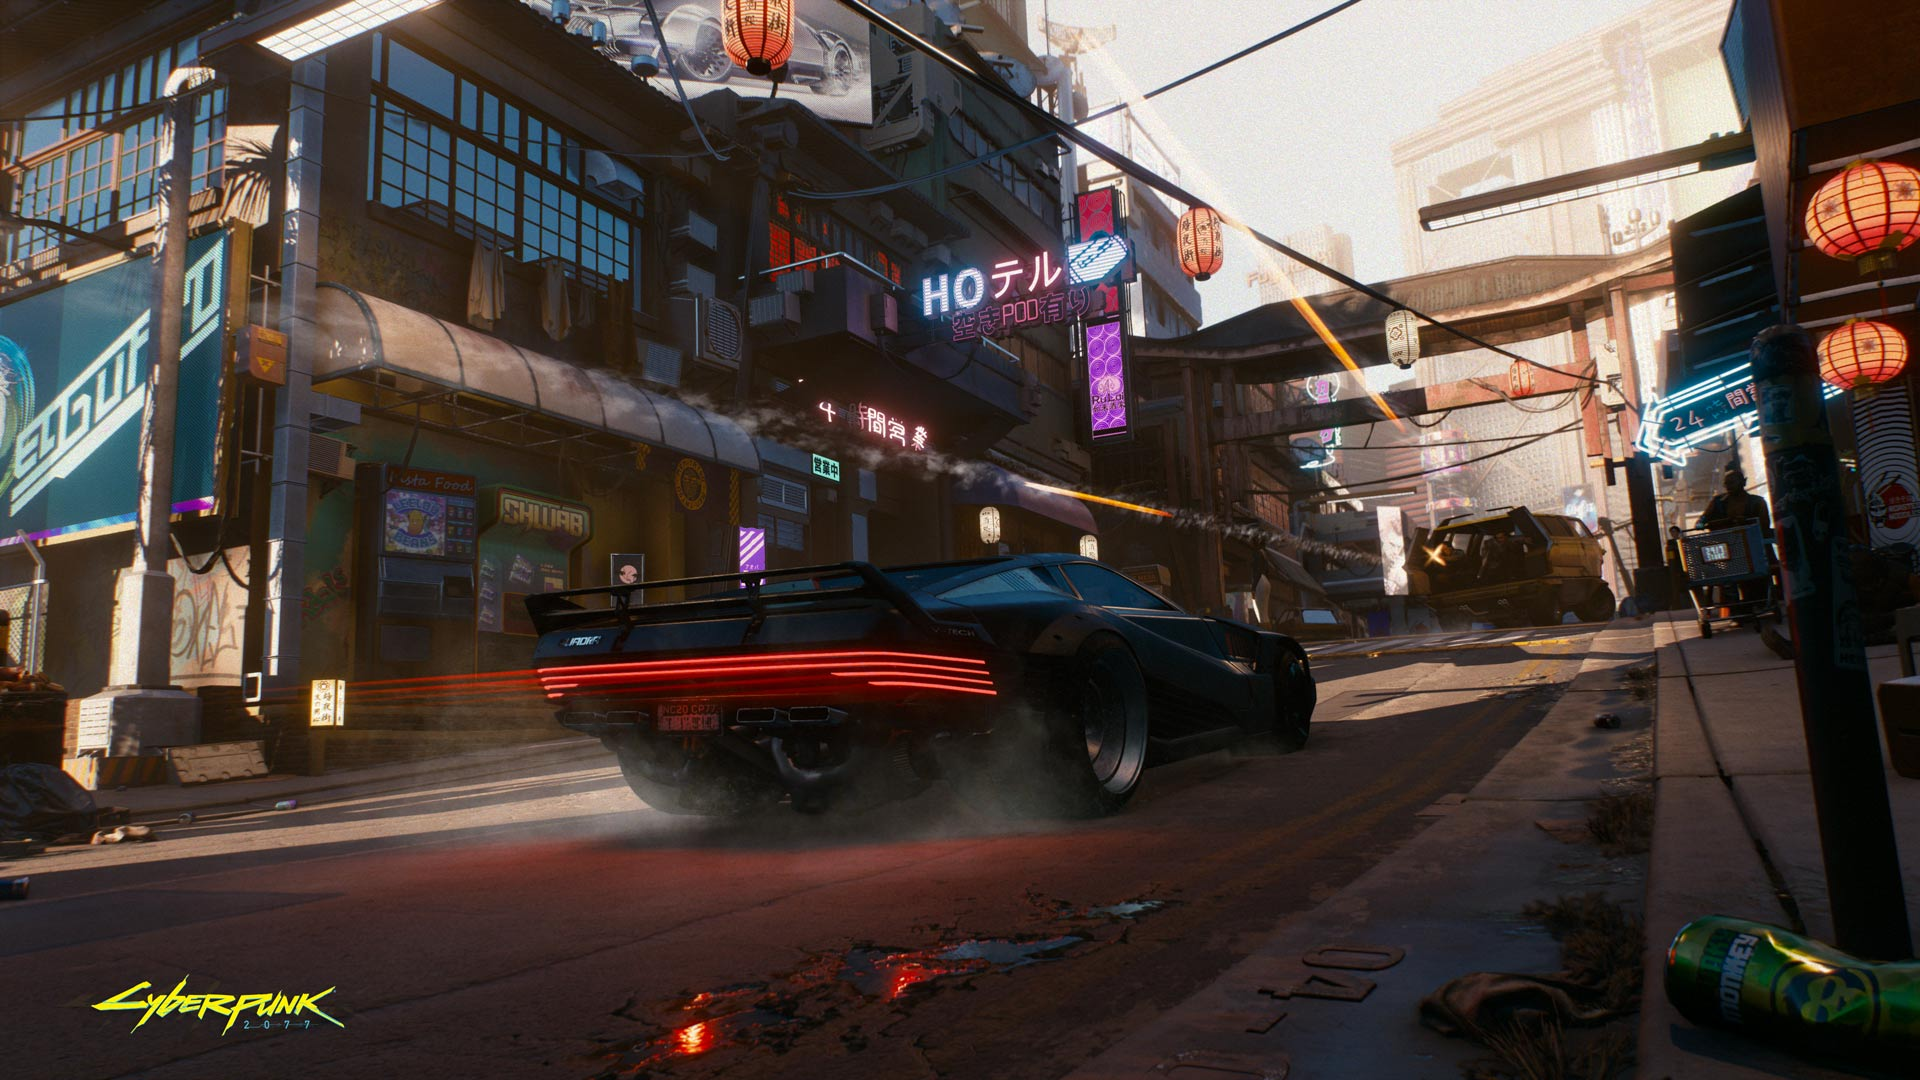 Cyberpunk 2077 Vehicles Are Summonable